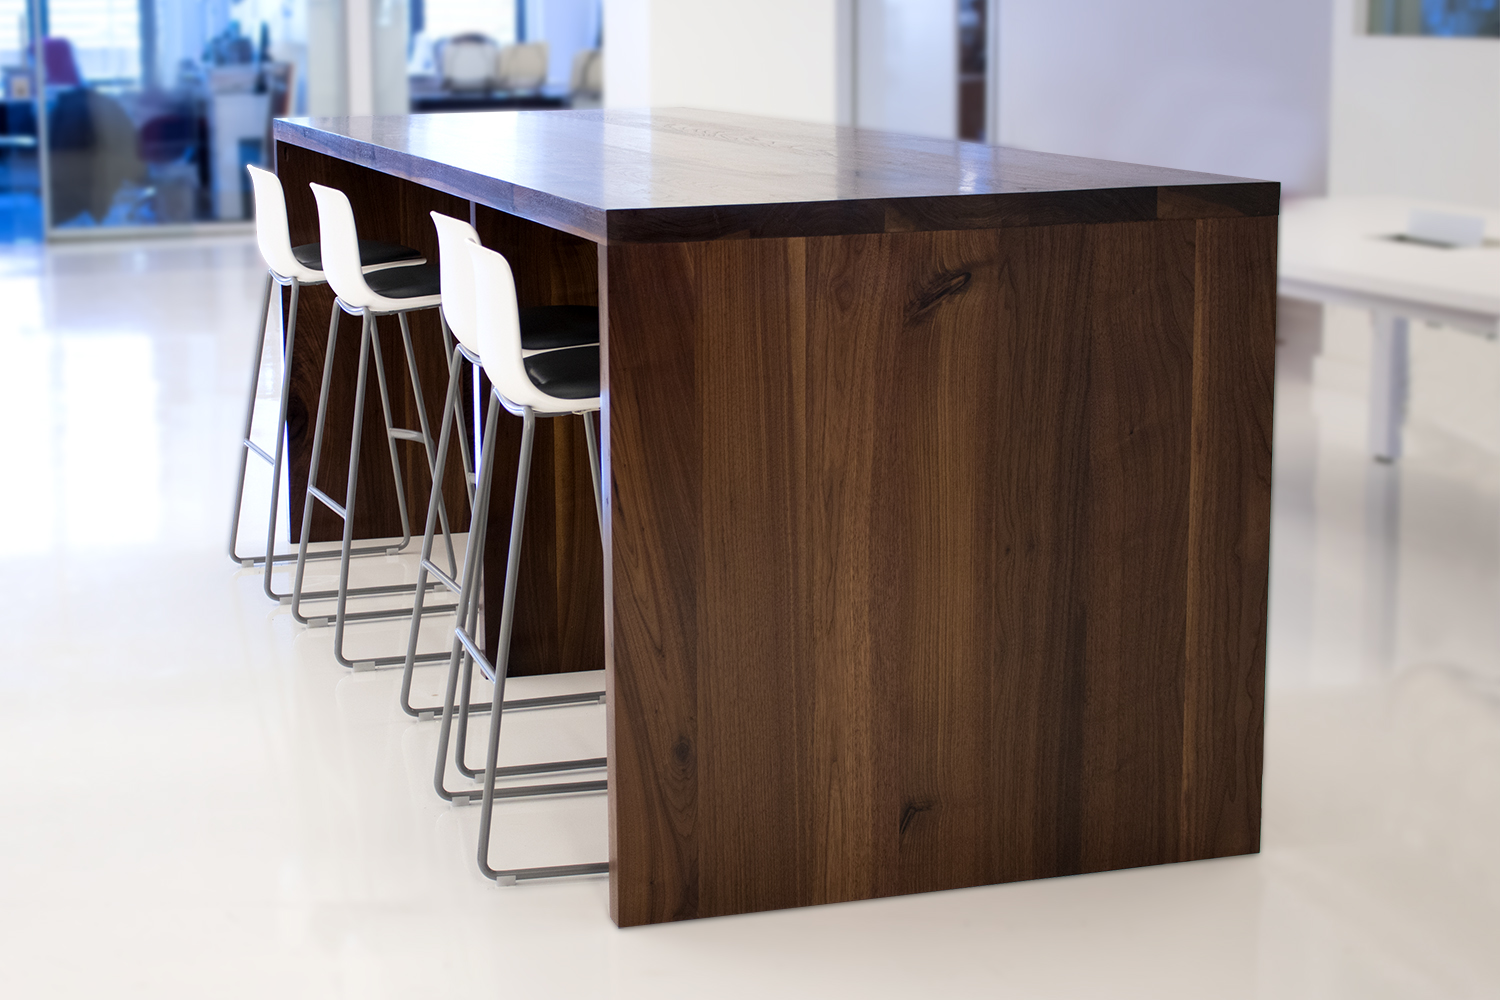 10 foot Walnut conference table